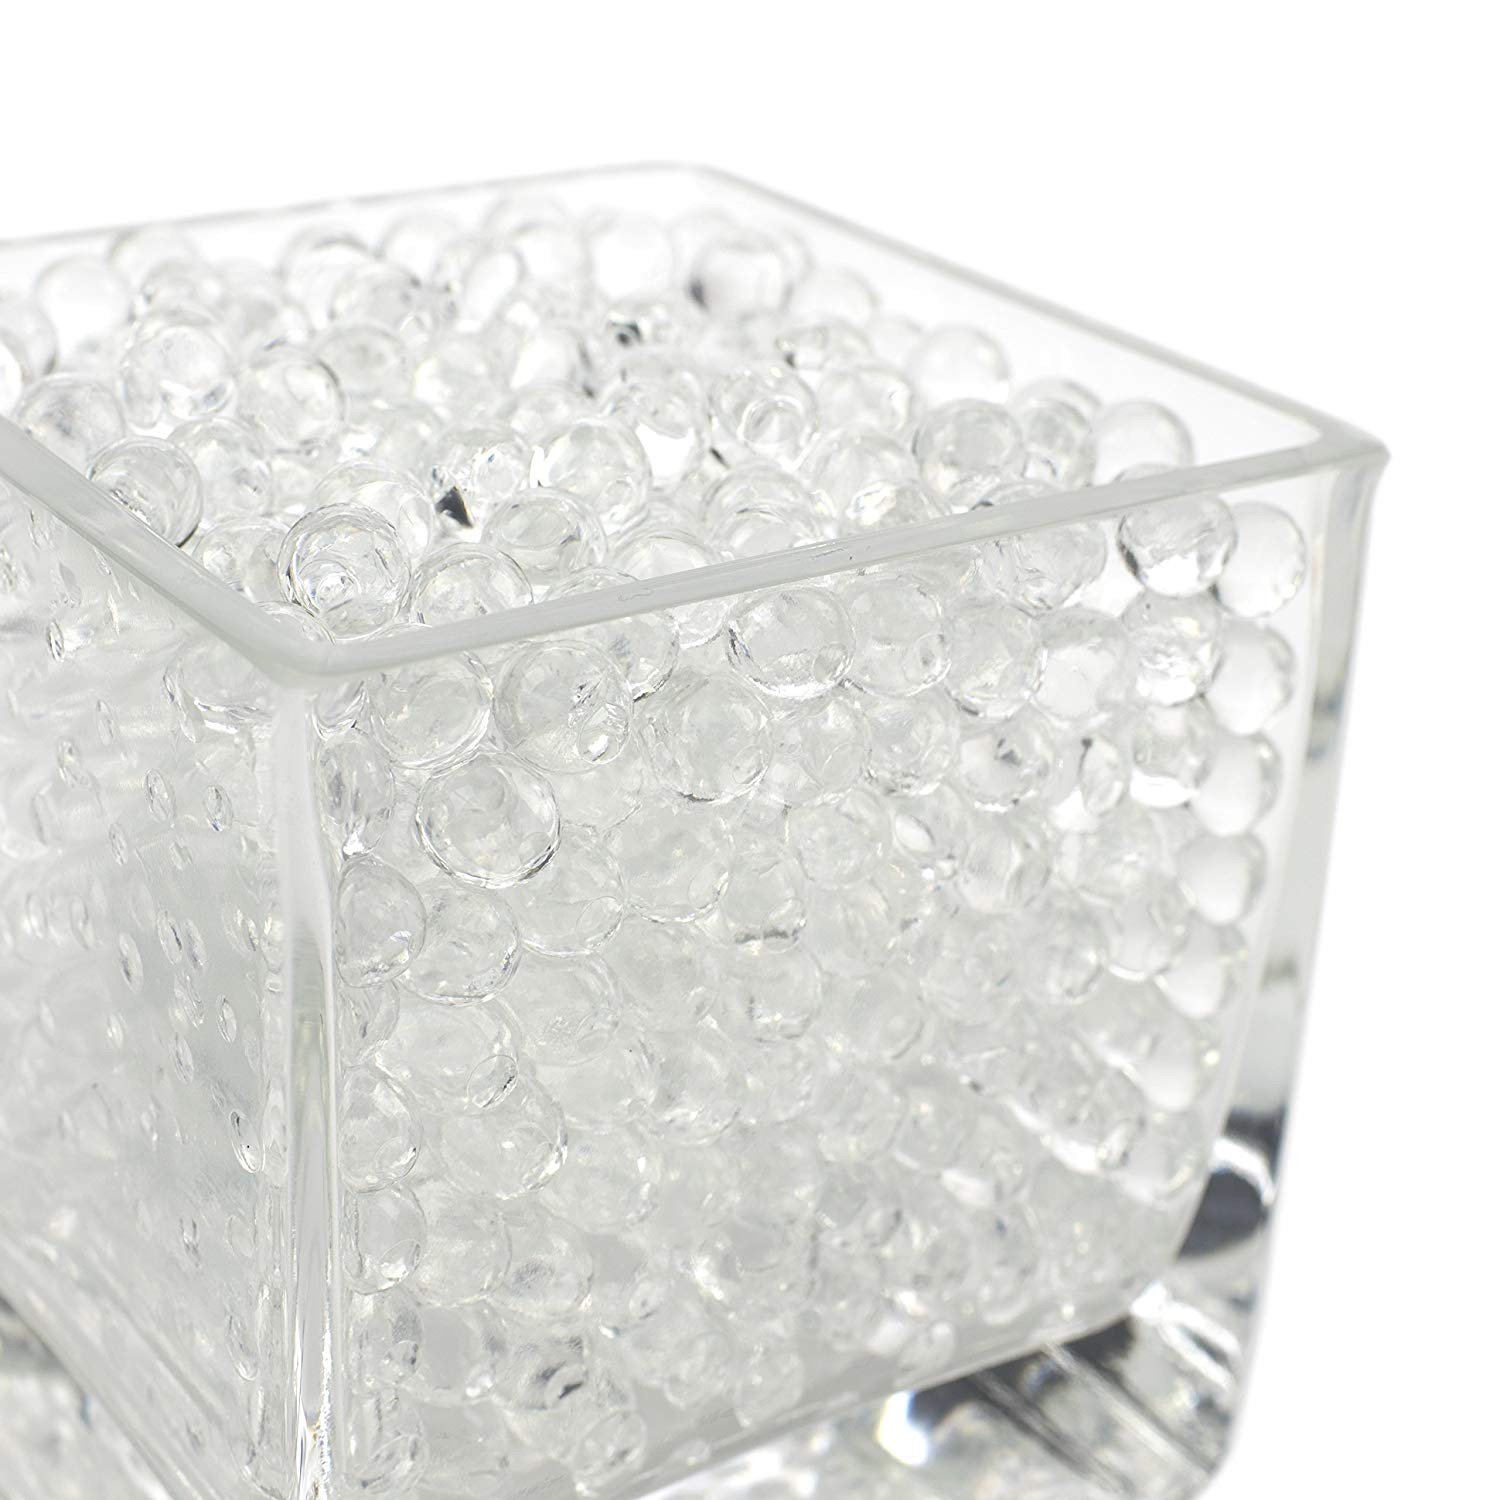 clear crushed glass vase filler of amazon com magic beadz clear jelly water beads transparent gel regarding amazon com magic beadz clear jelly water beads transparent gel pearls vase filler wedding centerpiece candles flower arrangements over 20000